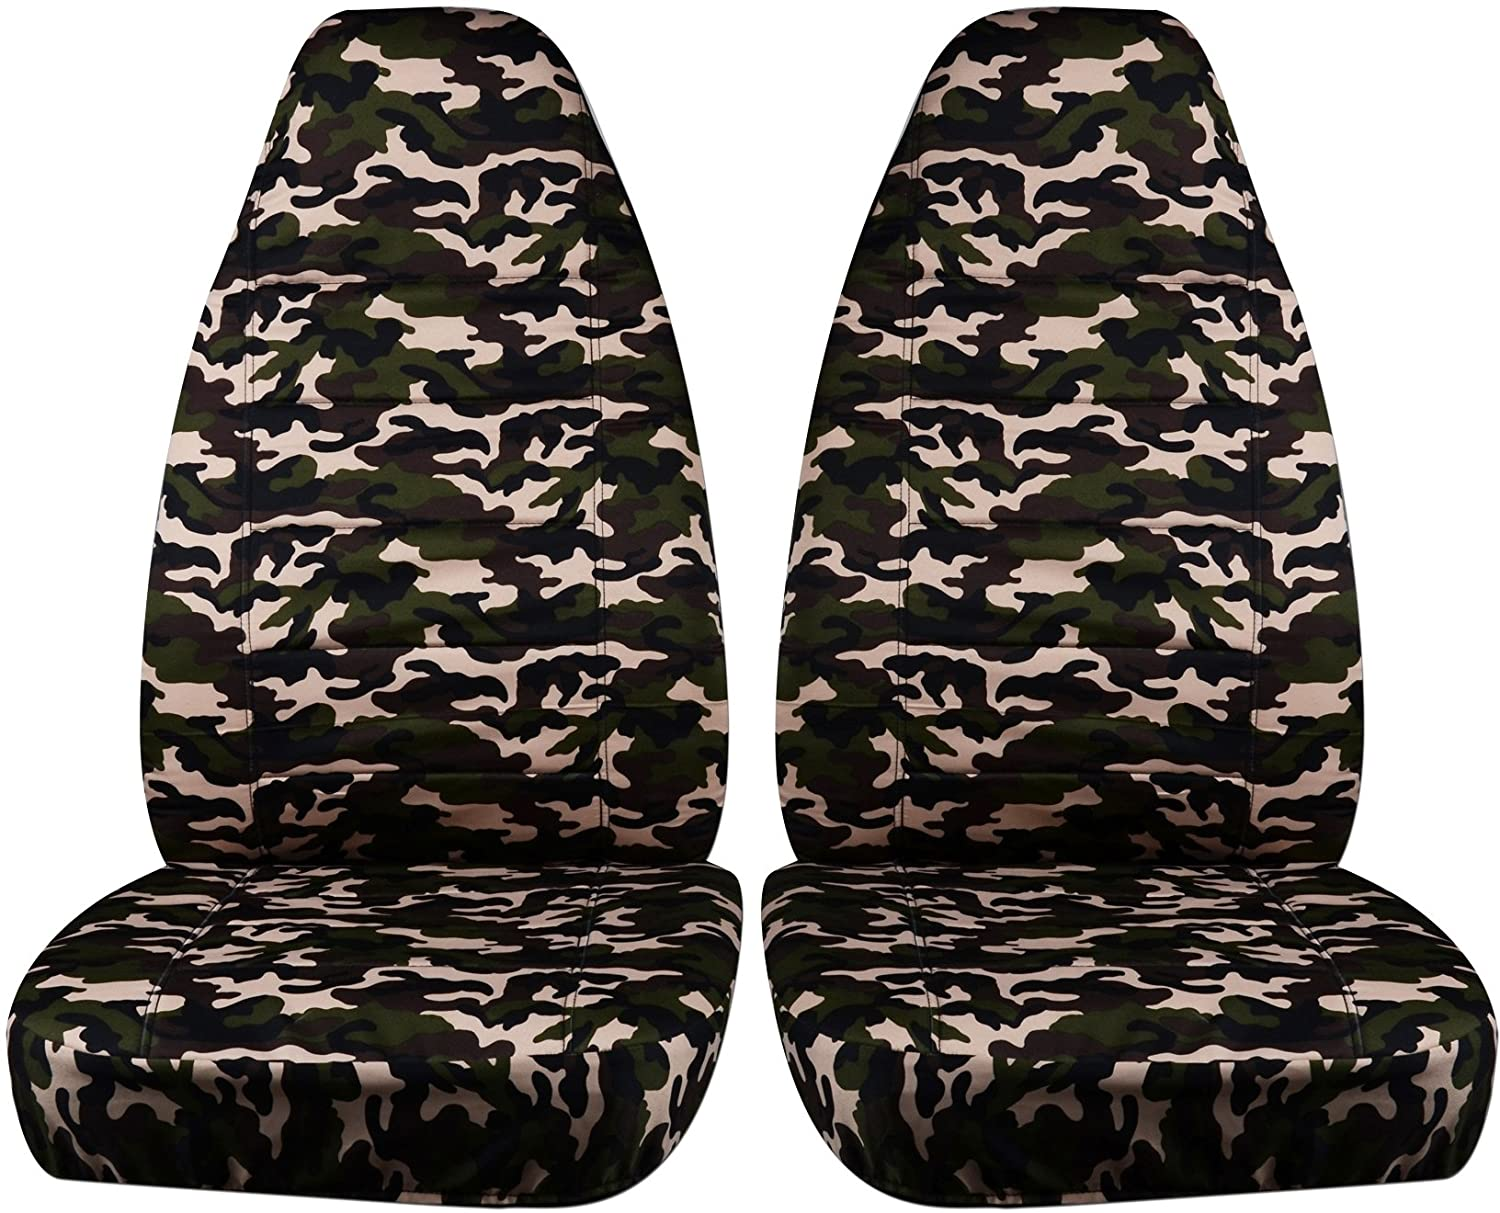 2004-2012 Chevy Colorado/GMC Canyon Camo Truck Bucket Seat Covers: Orange Real Tree Camouflage (16 Prints) 2005 2006 2007 2008 2009 2010 2011 Chevrolet Designcovers